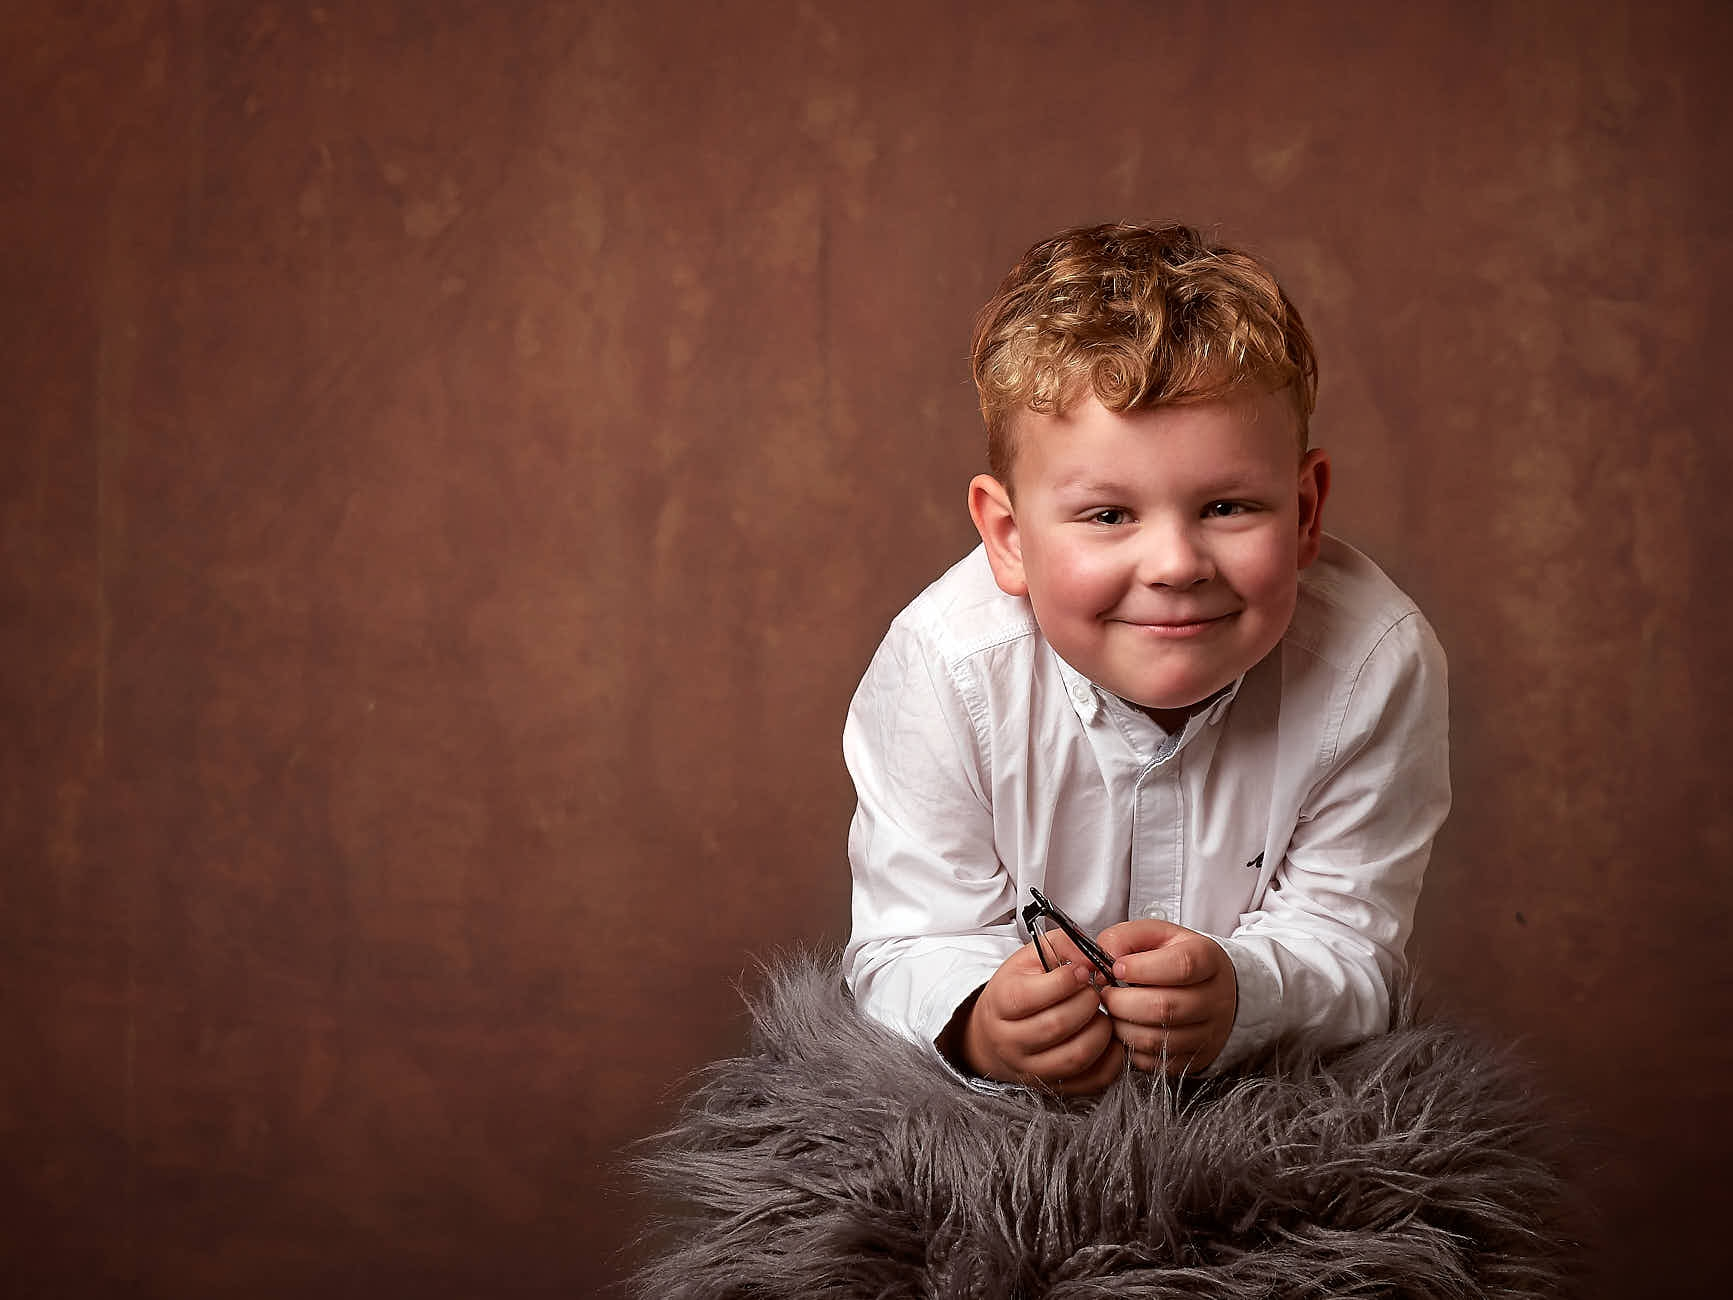 James Pyne Photography-Melbourne-Frankston-Somerville-Mornington Peninsula-Portrait-Family-Children-Photographer